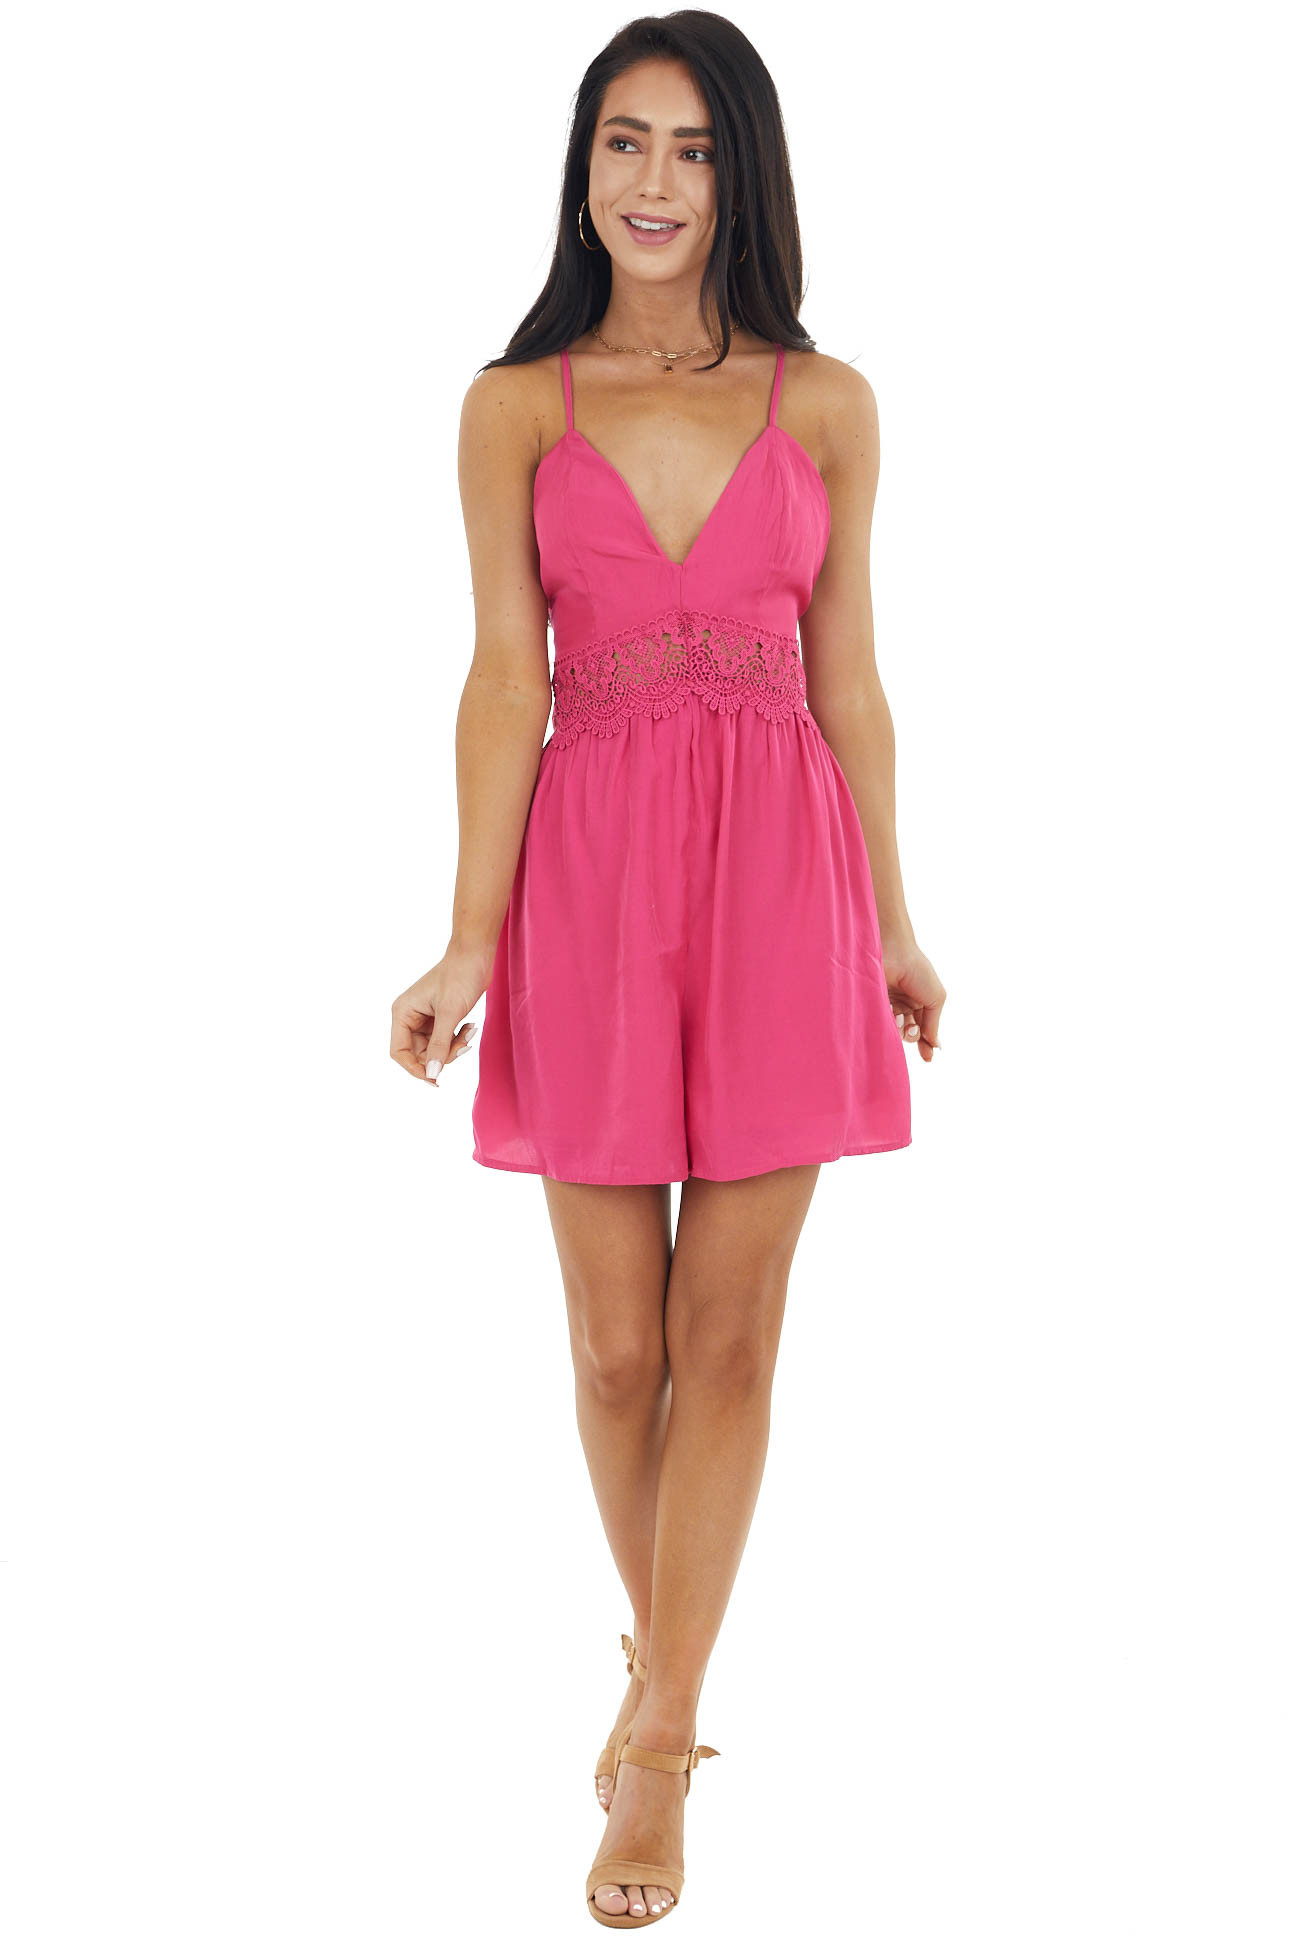 Hot Pink Sleeveless Romper with Lace Peekaboo Waist Detail